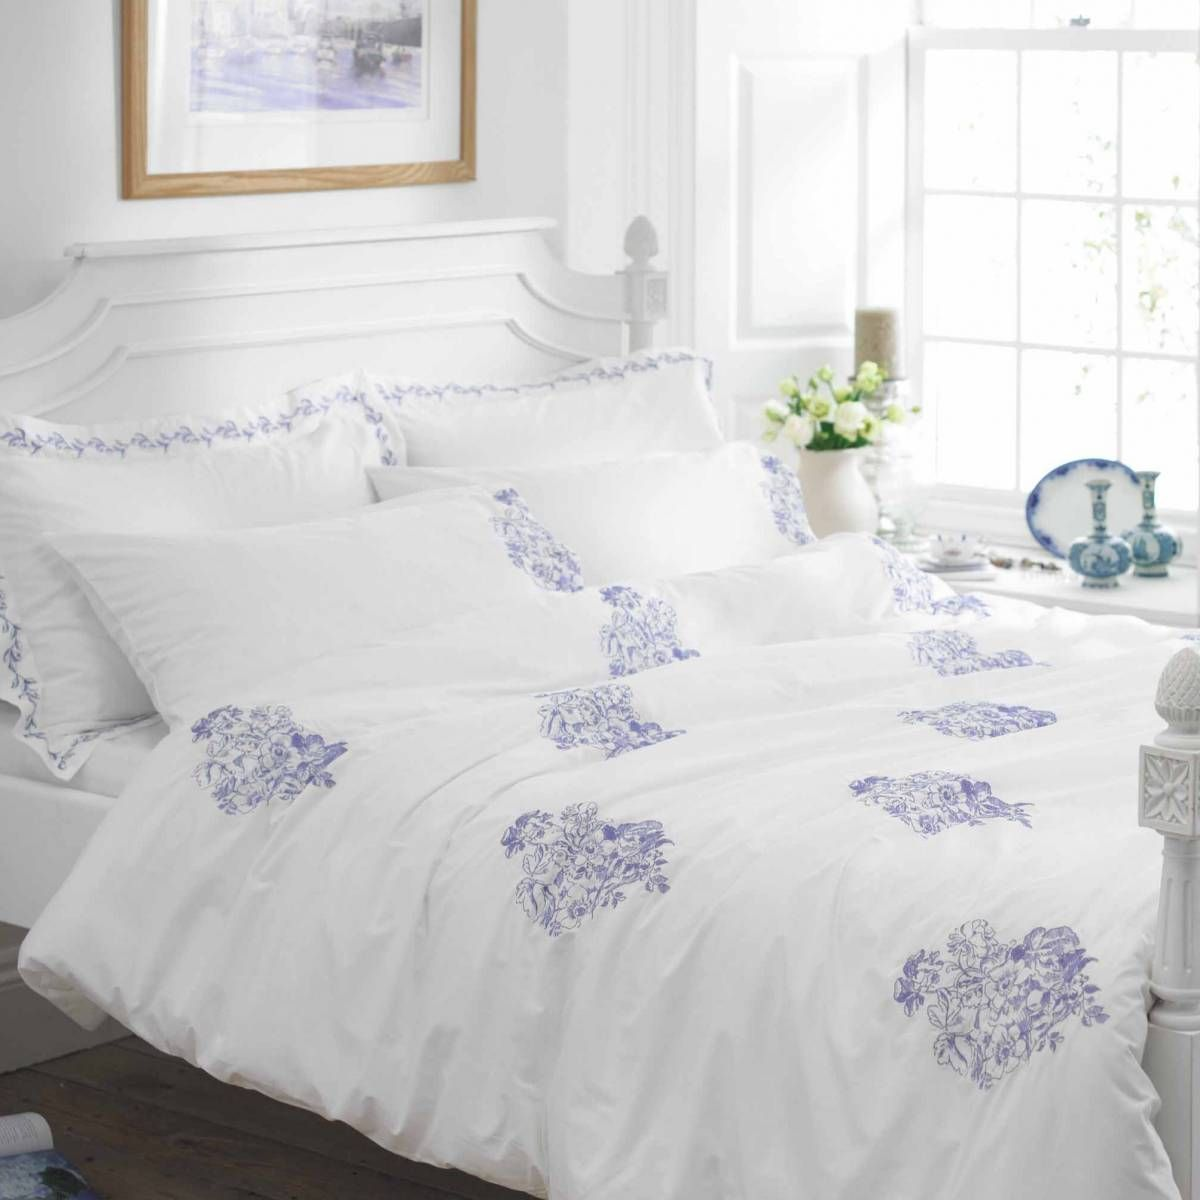 ruched products the blue decor sutter duvet bedding inspiration ruffled cover and crane white canopy bedroom zoom